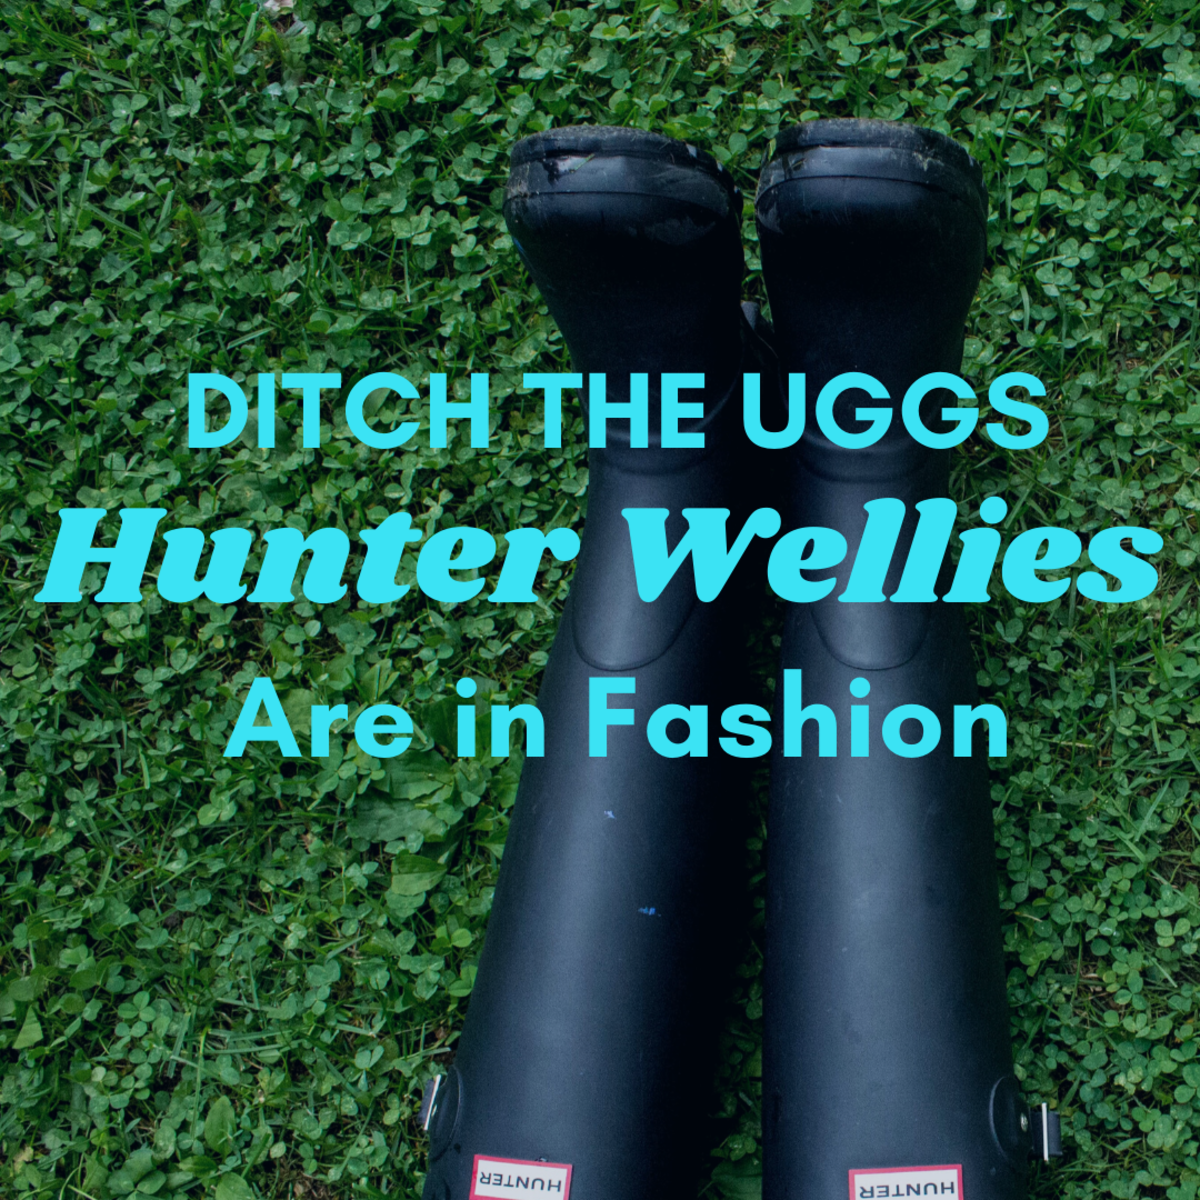 Men's Fashion: Can Men Wear Hunter Boots or UGGs (or Both)?